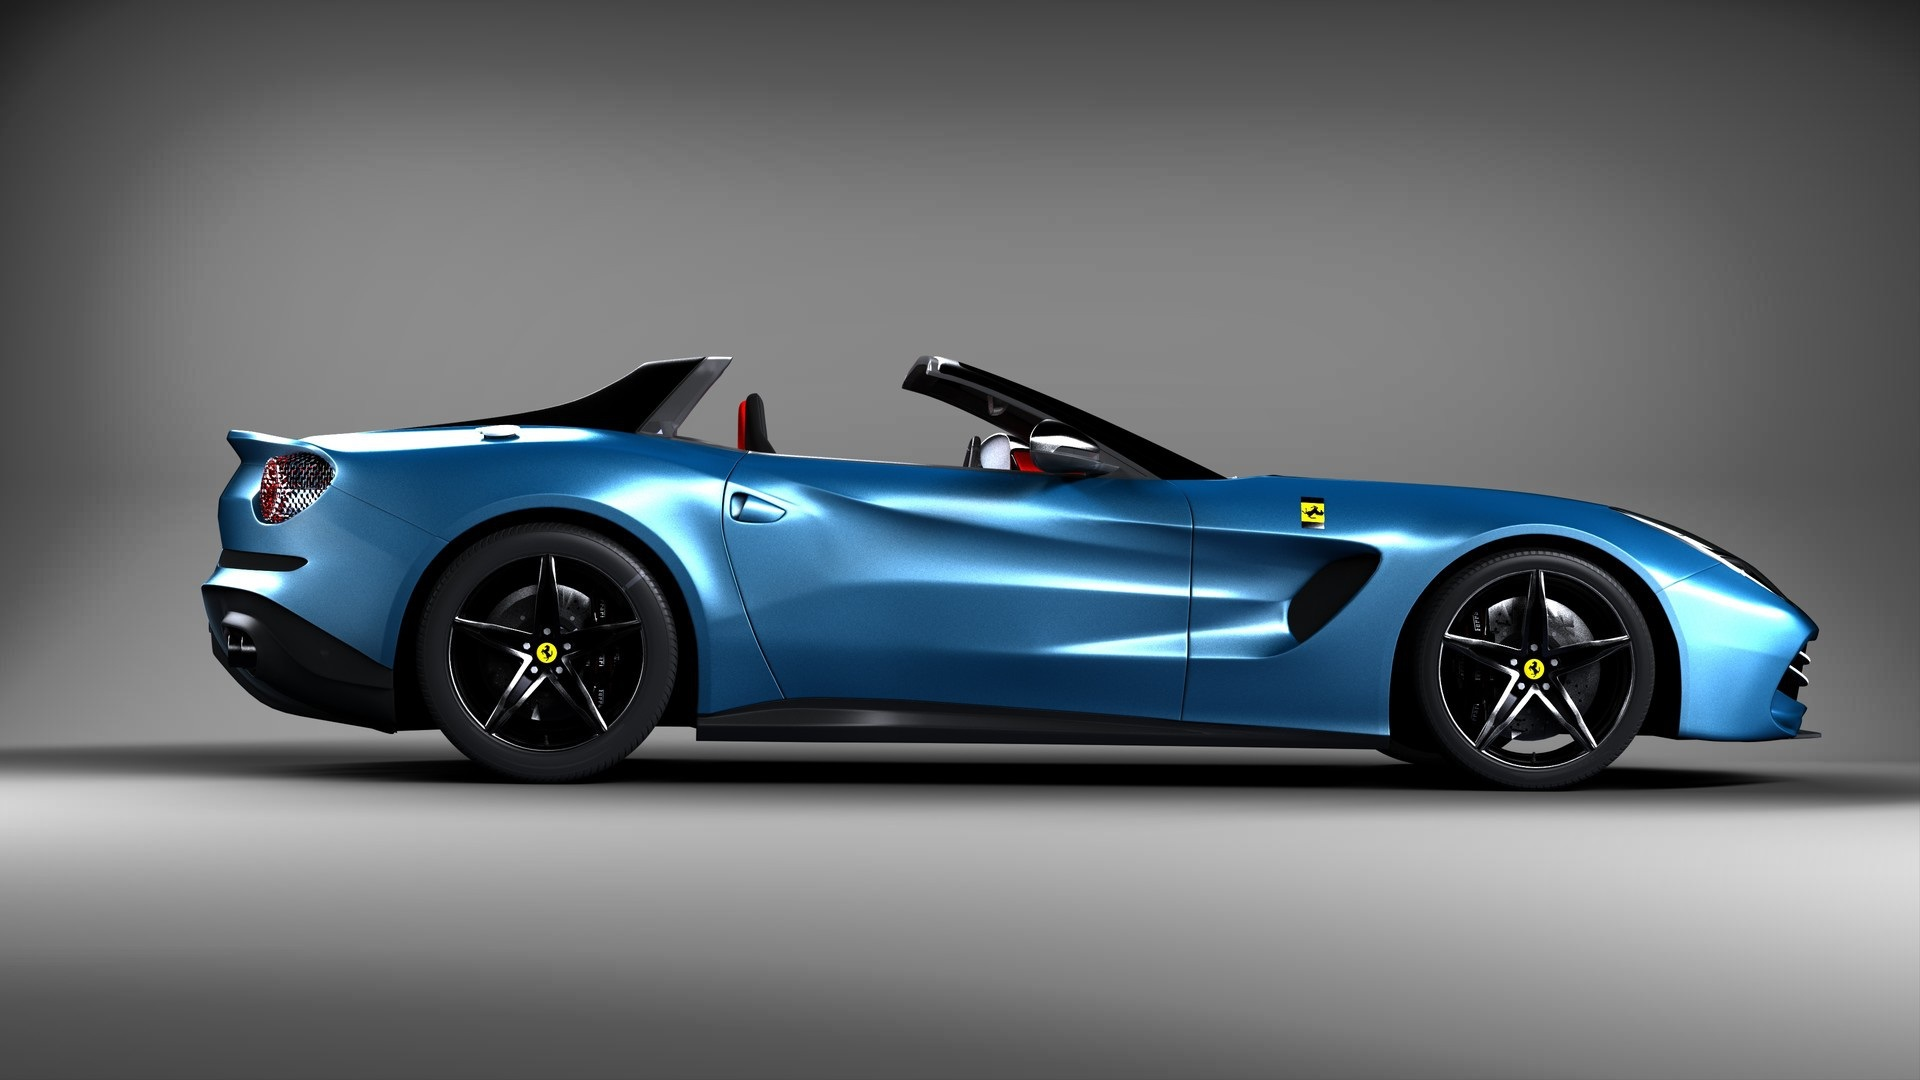 Wallpaper Ferrari Blue Car Side View Sports Car 1920x1080